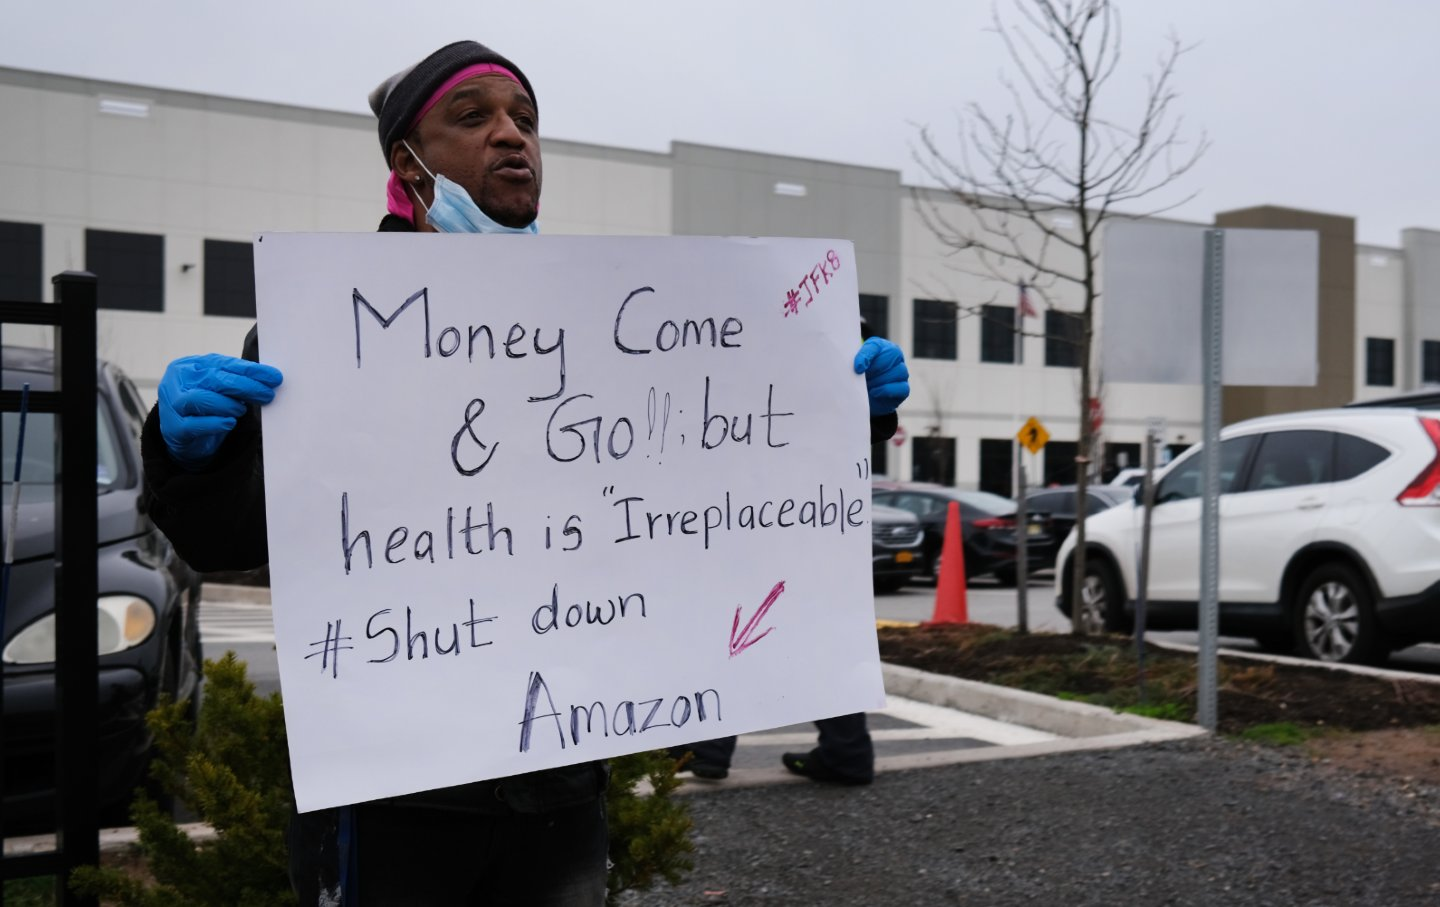 A worker stands outside an Amazon warehouse holding a sign that says